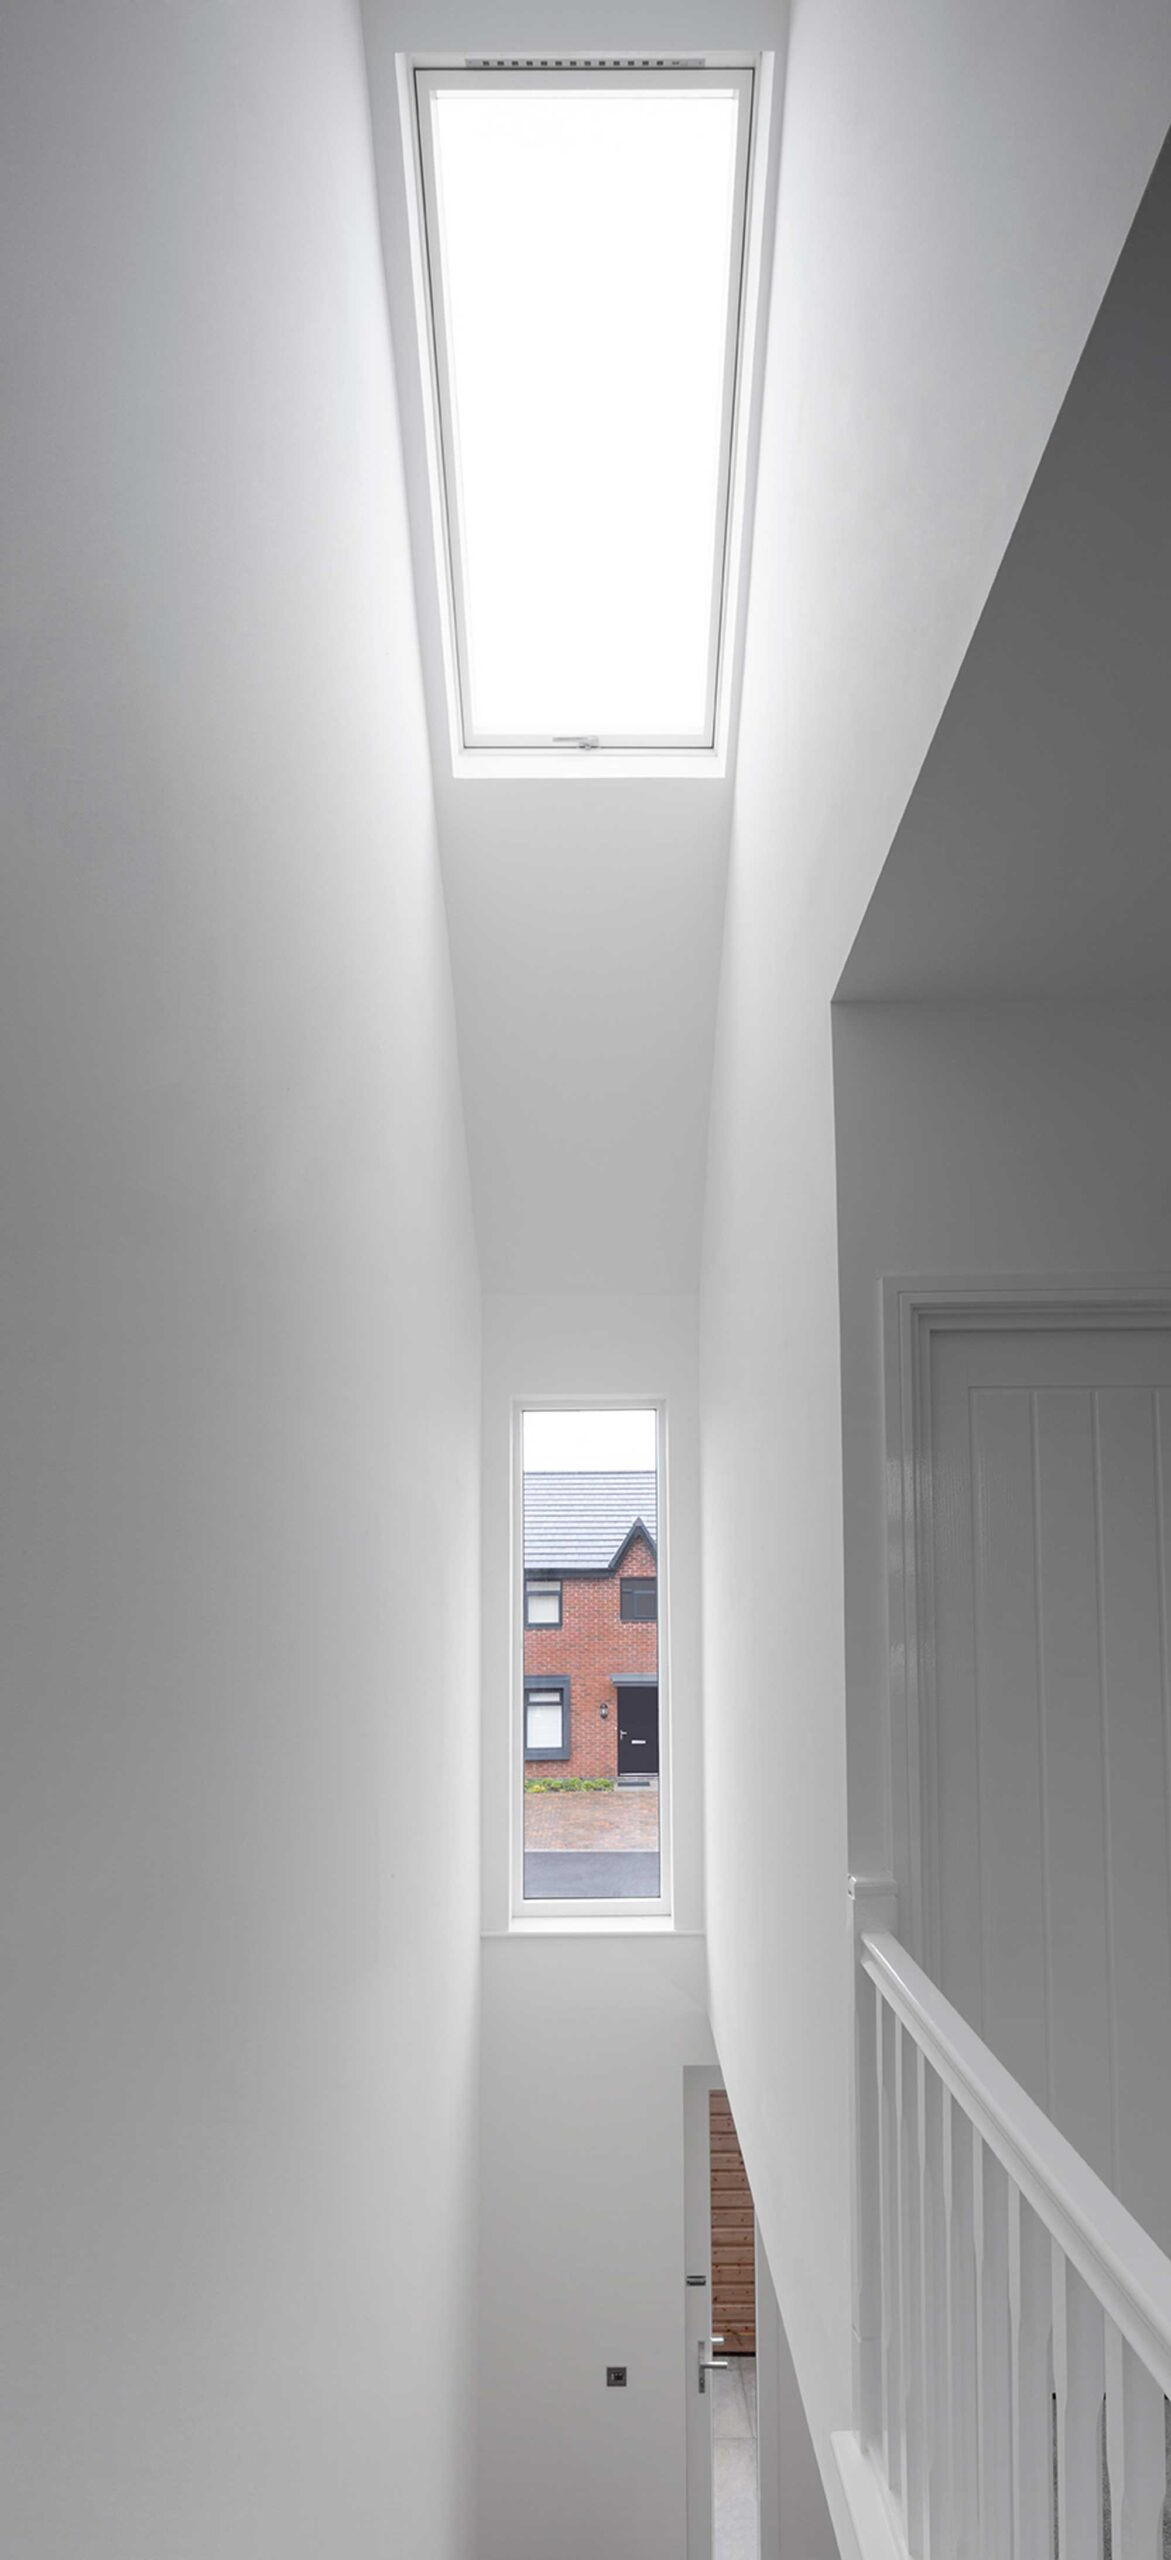 taylor-wimpey-openstudio-architects-stair-to-entrance